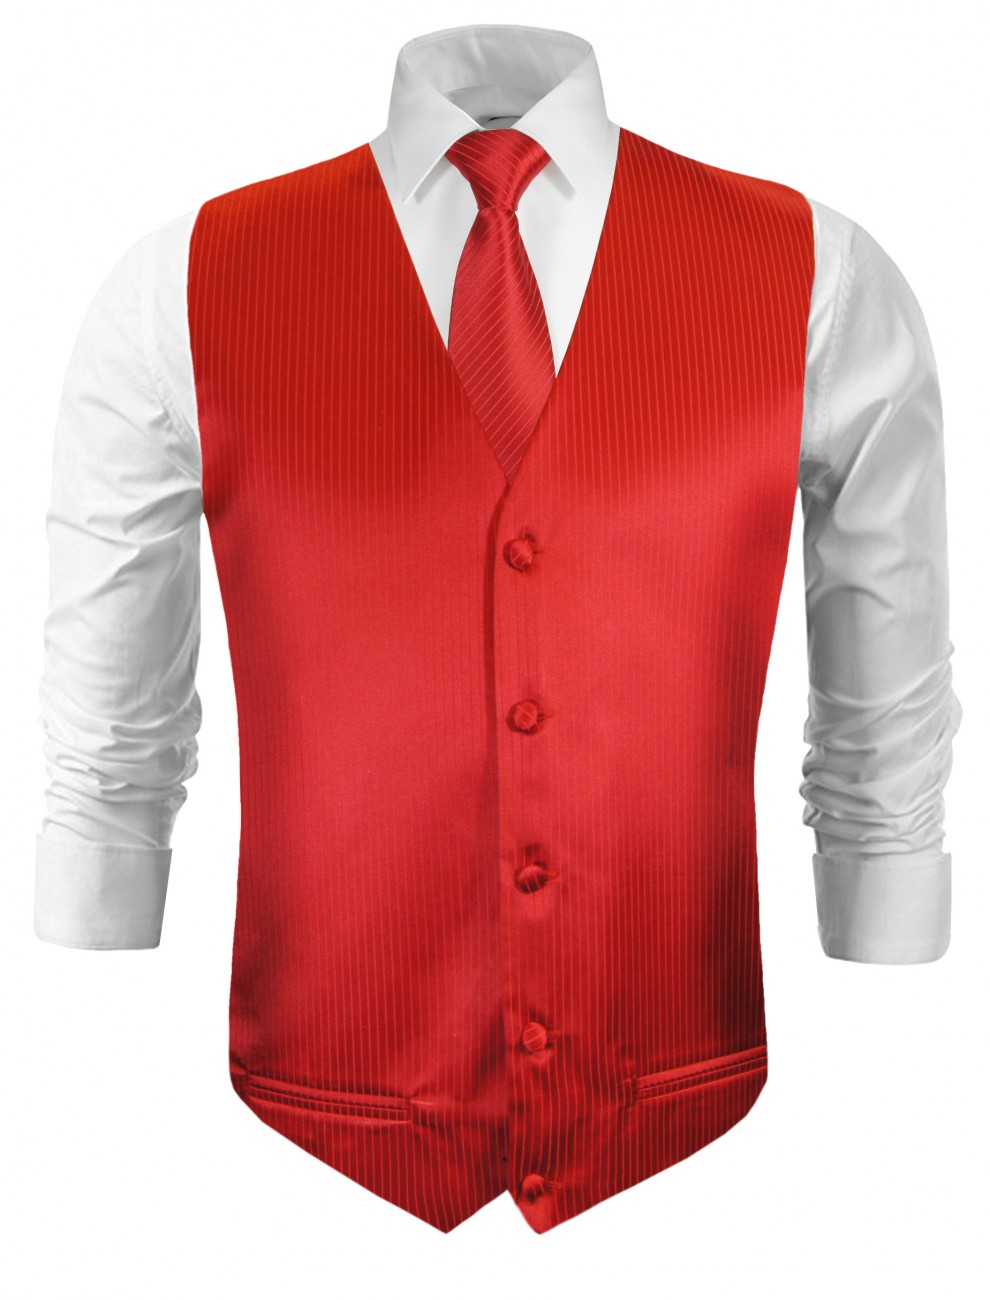 Wedding vest with necktie red solid